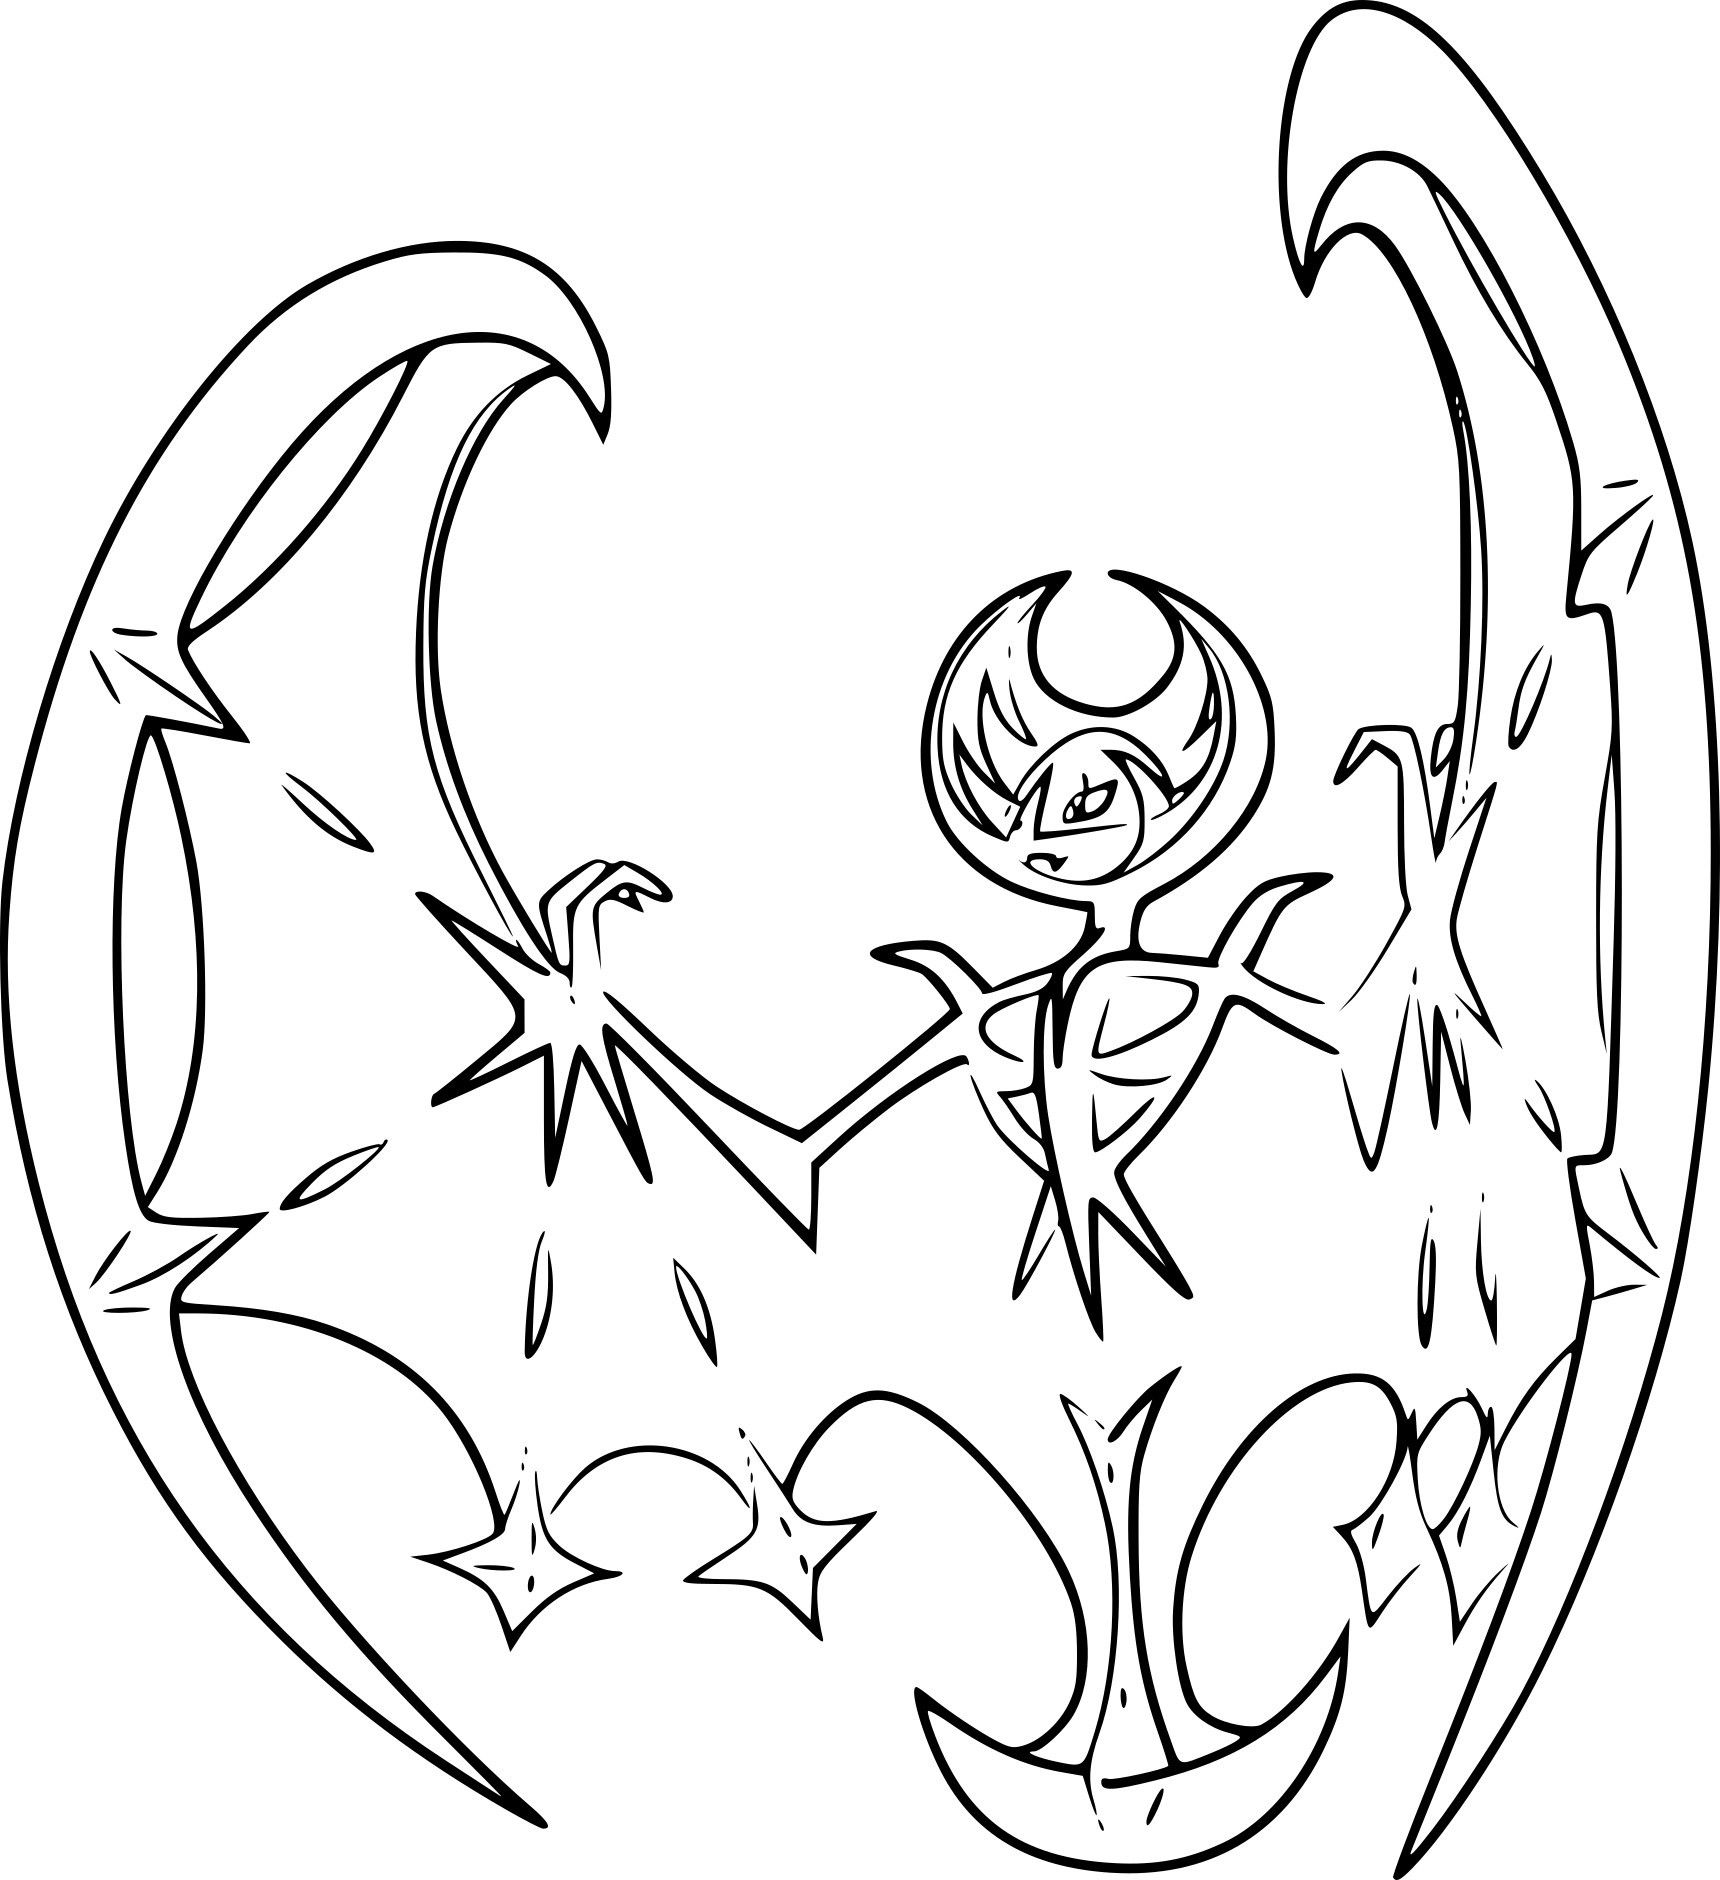 Pokemon Coloring Pages Lunala From The Thousand Pictures On The Net Concerning Pokemon Coloring P Pokemon Coloring Pages Pokemon Coloring Moon Coloring Pages